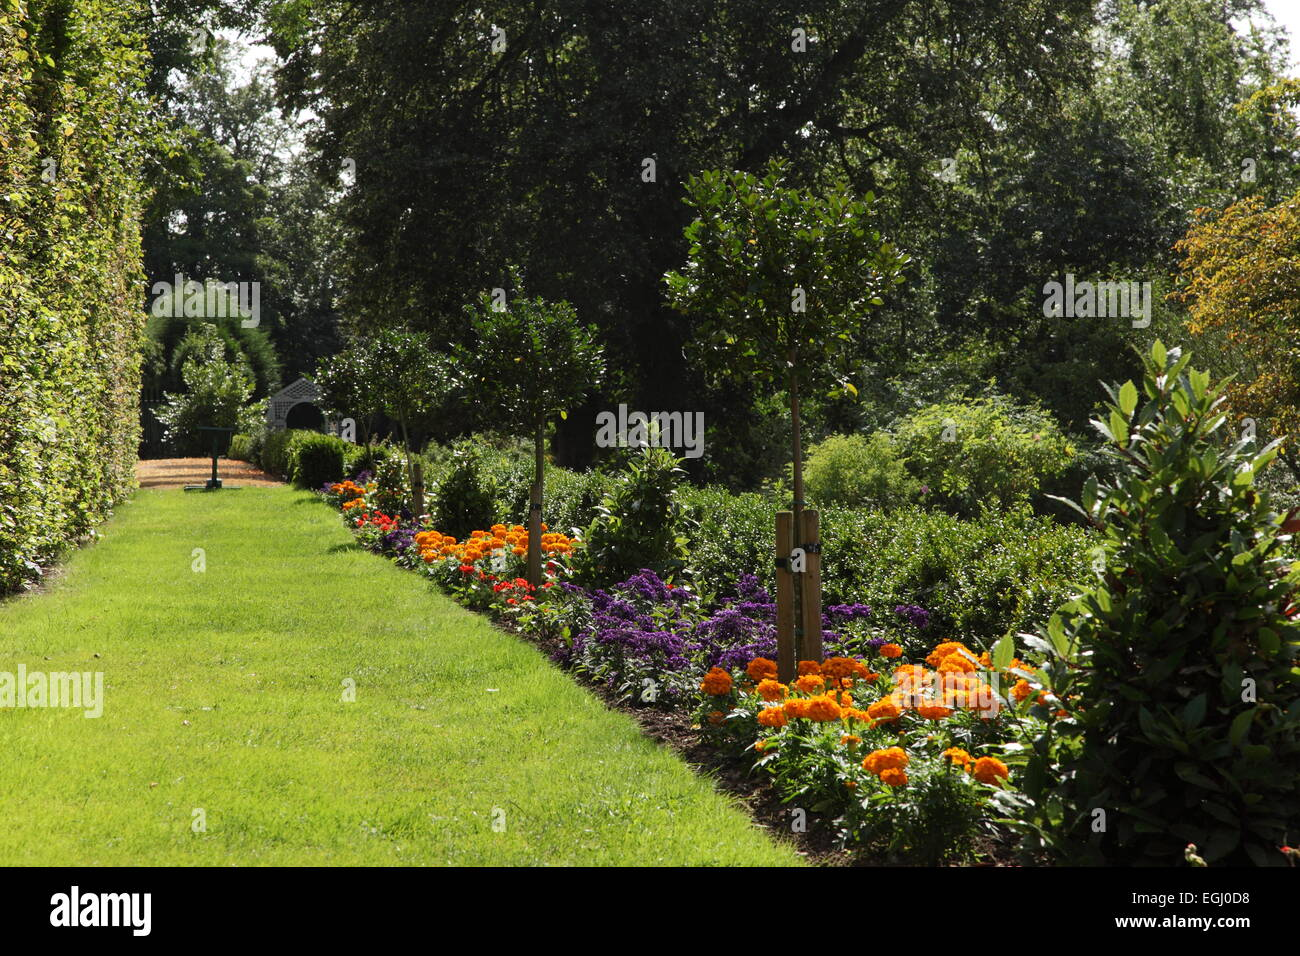 Castle Bromwich Hall Gardens, an English Baroque garden currently under restoratiion by the Castle Bromwich Hall - Stock Image